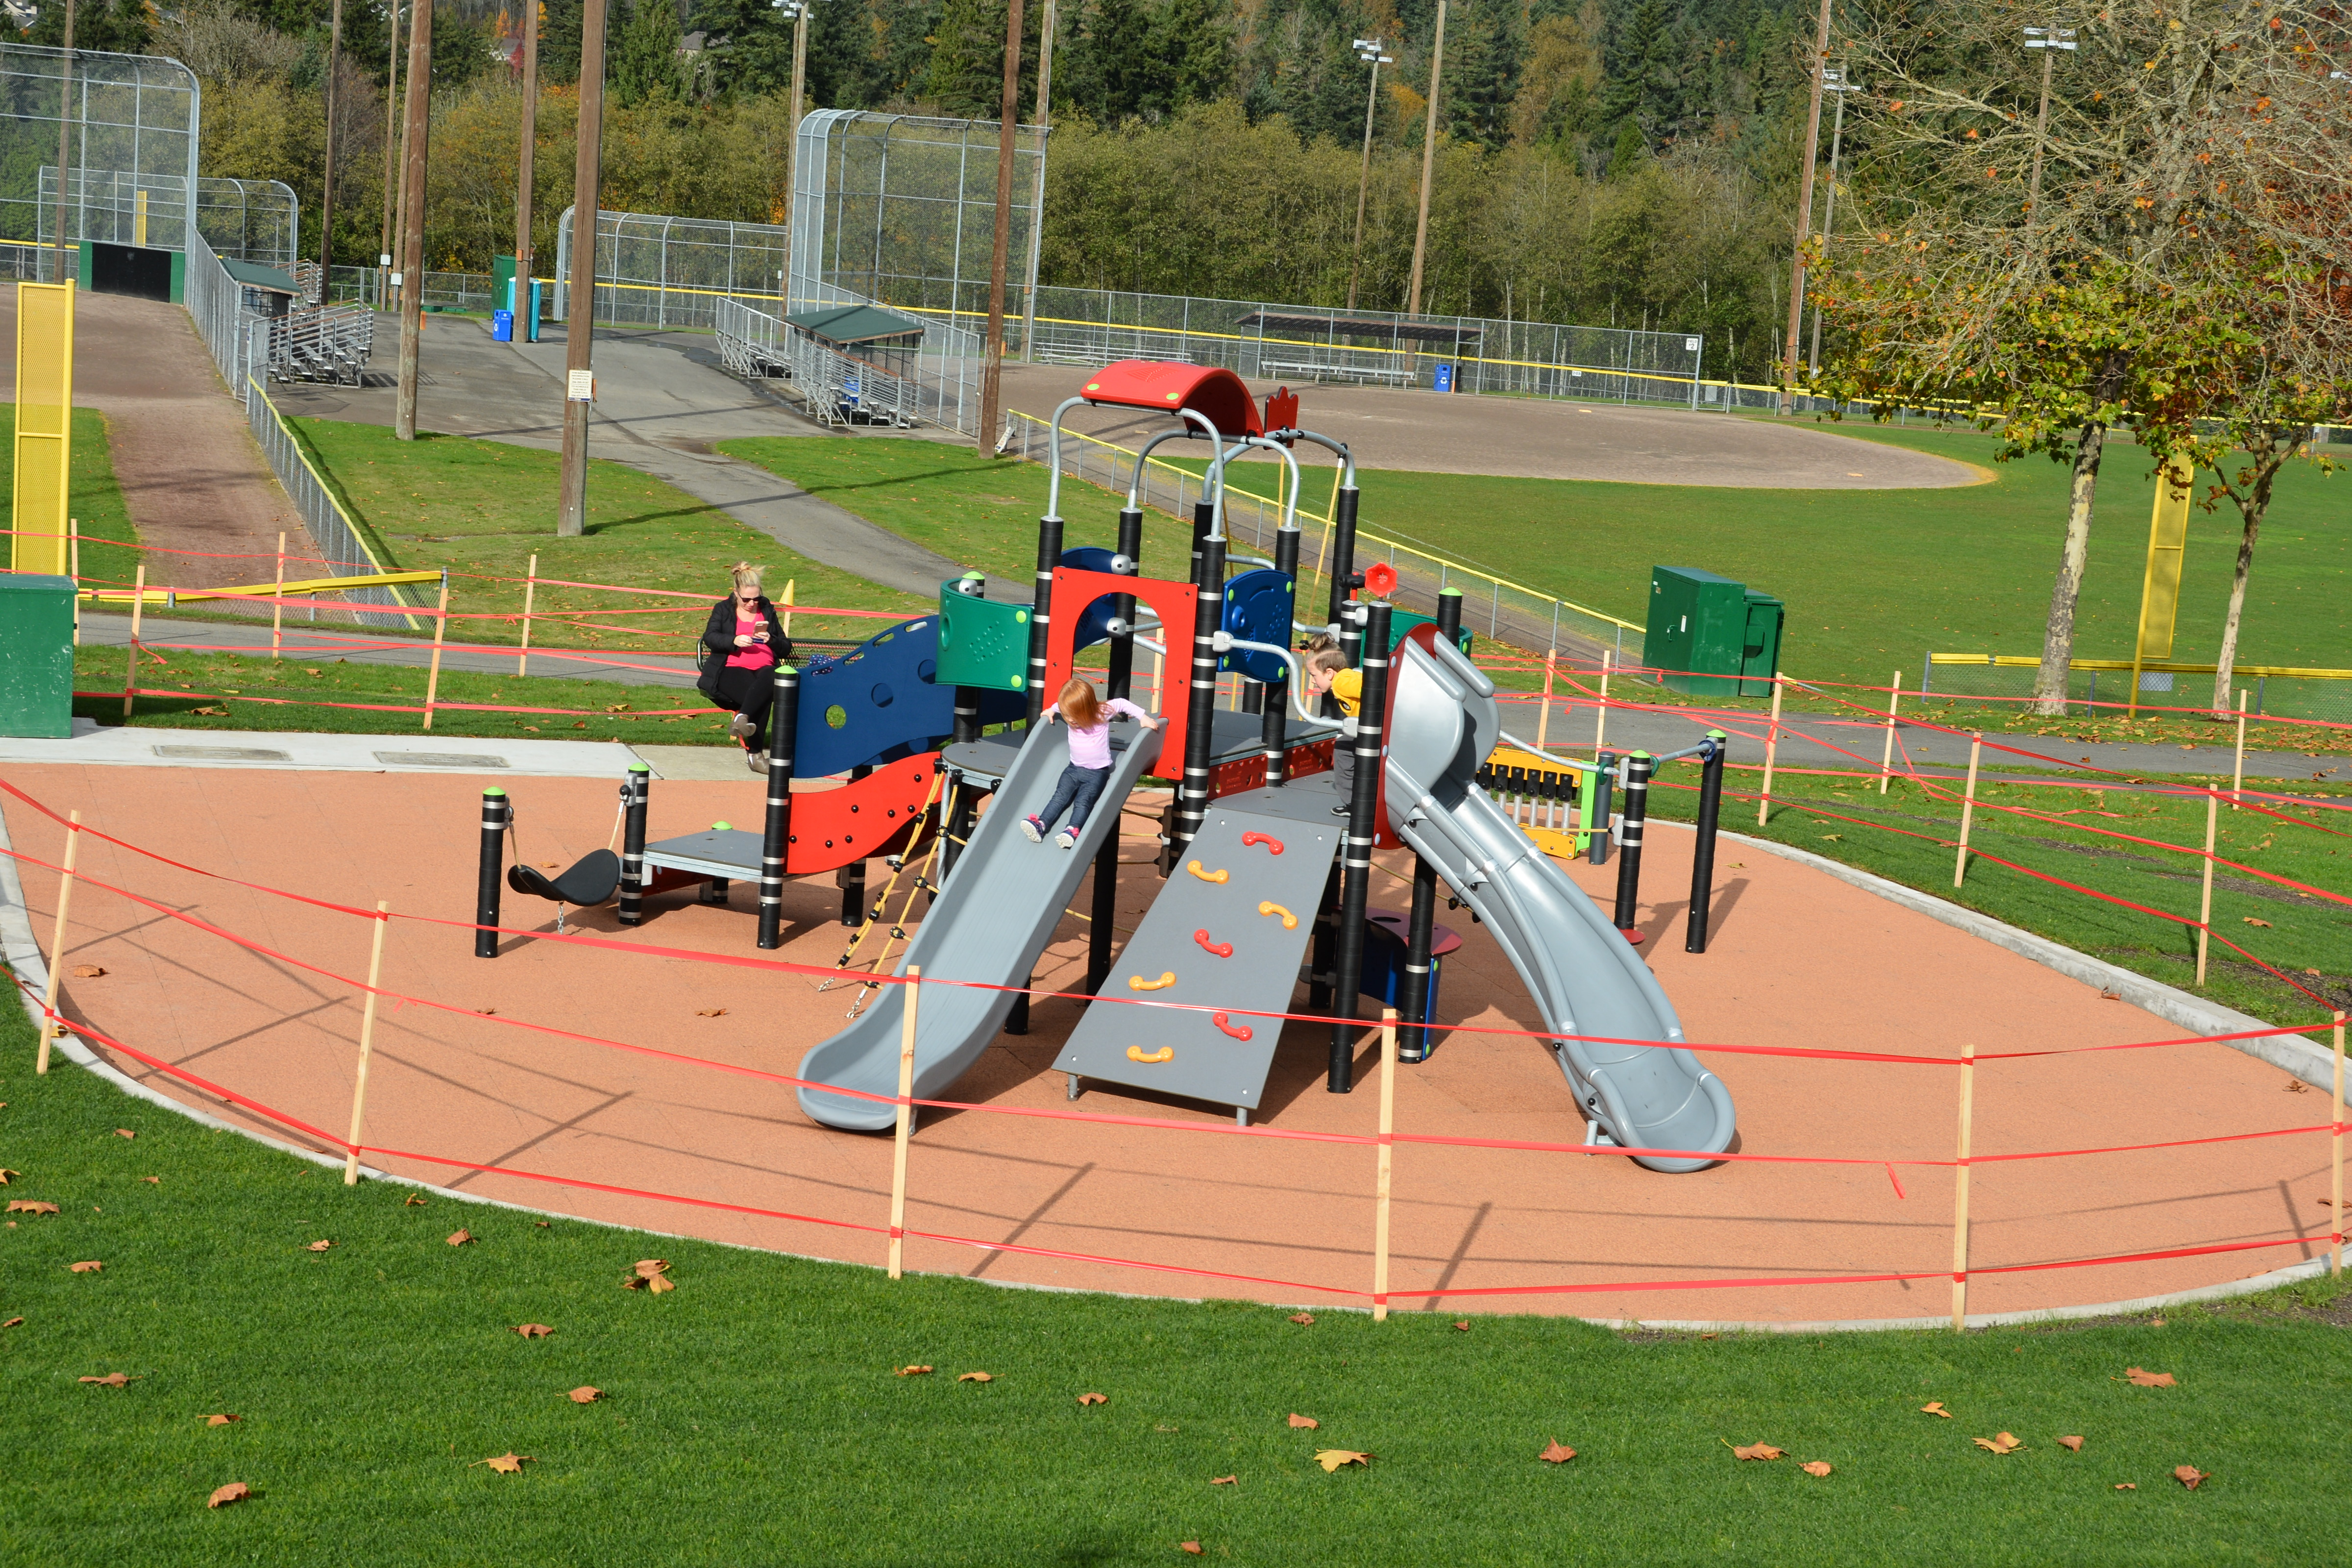 The 2-5 year old play structure at Petrovitsky Park